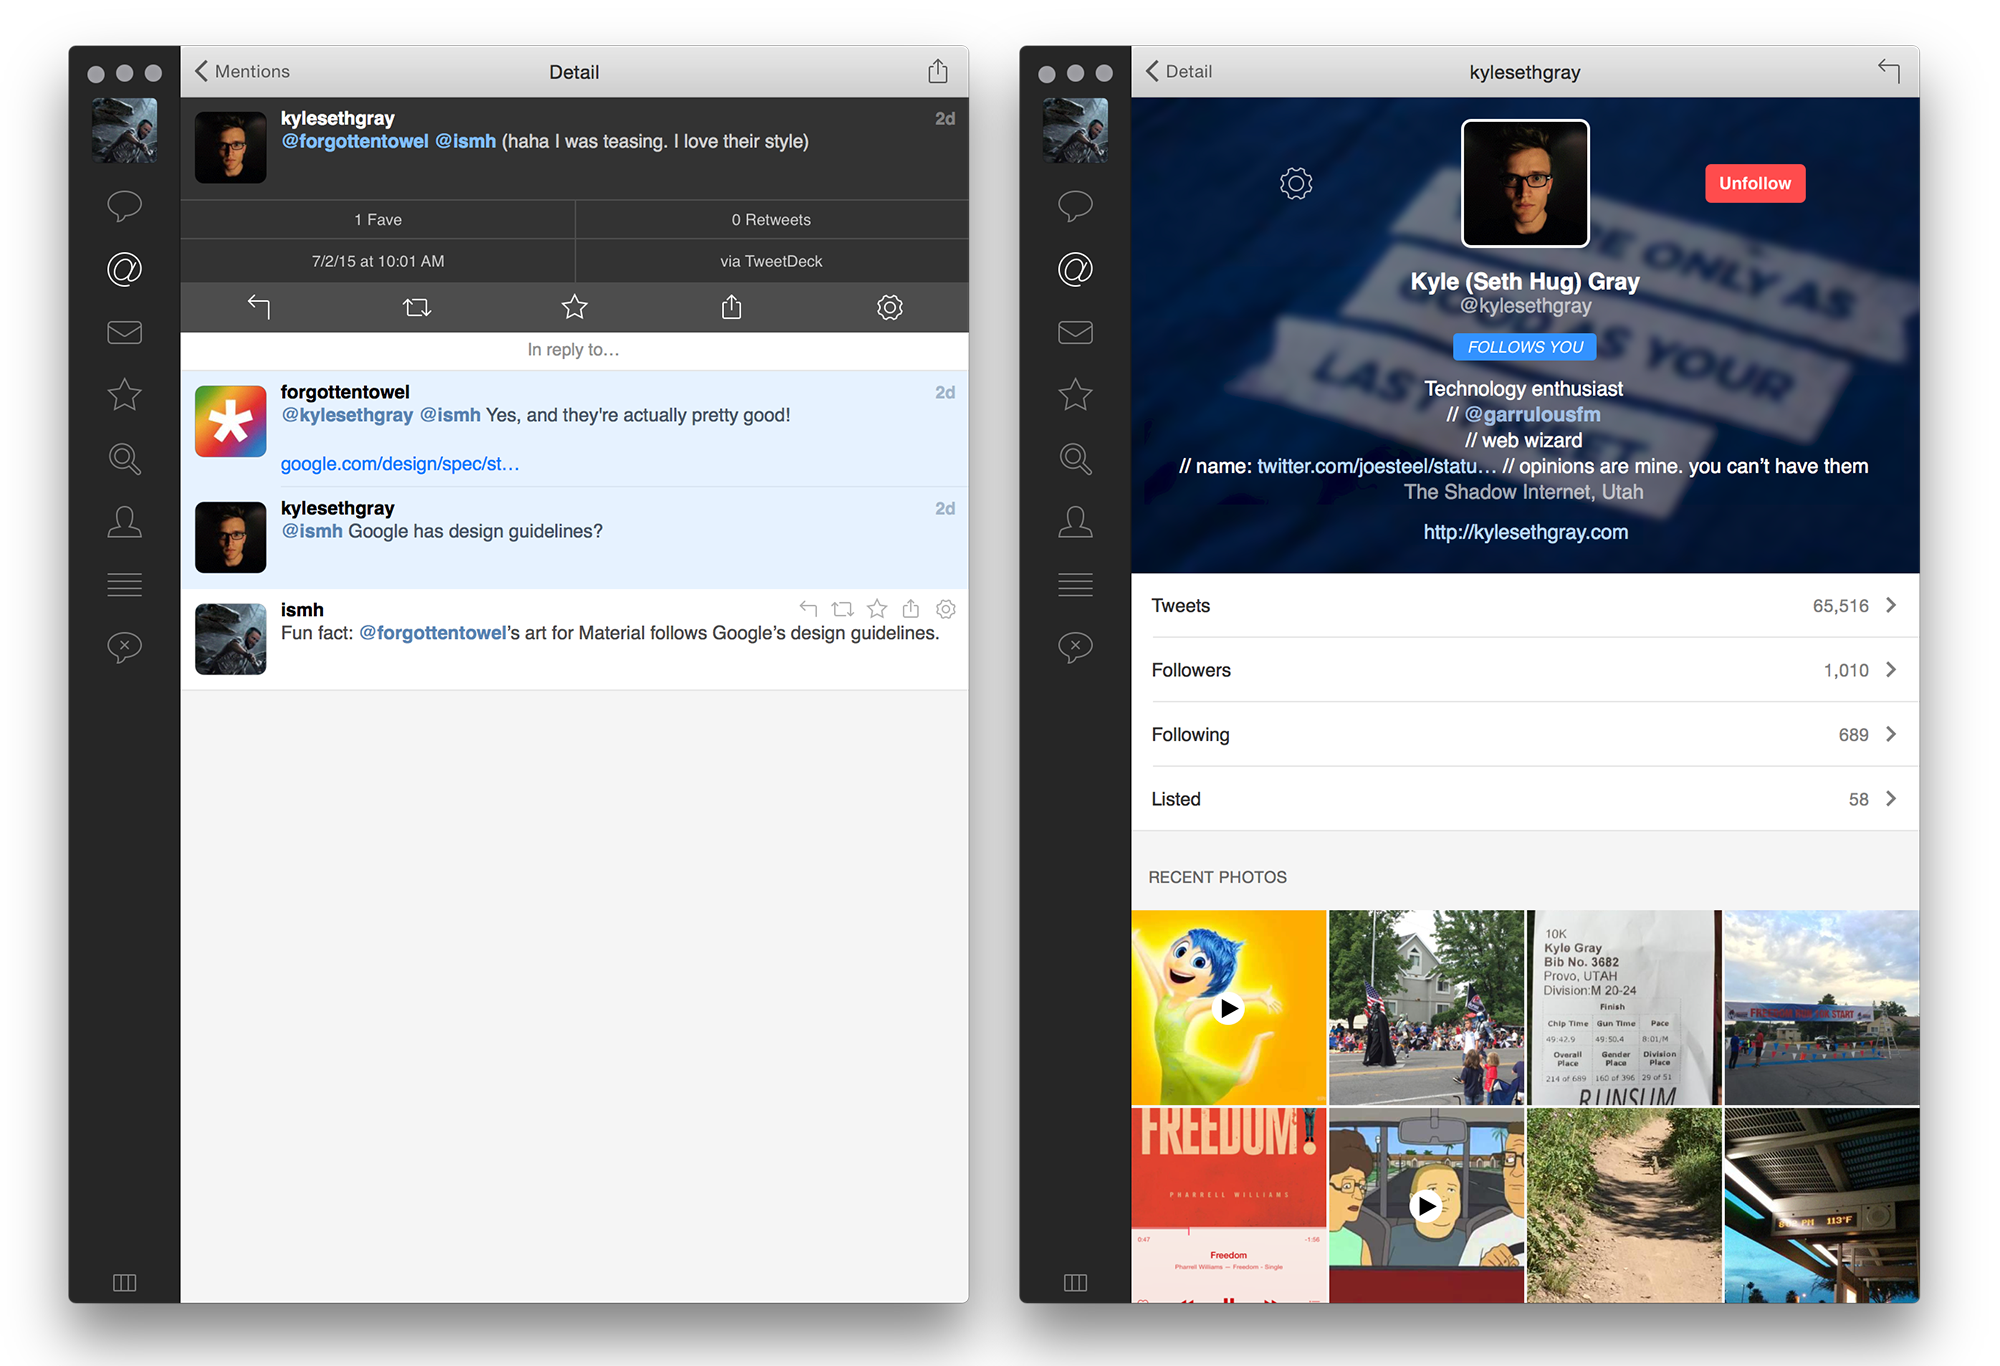 Conversations and profiles in Tweetbot 2